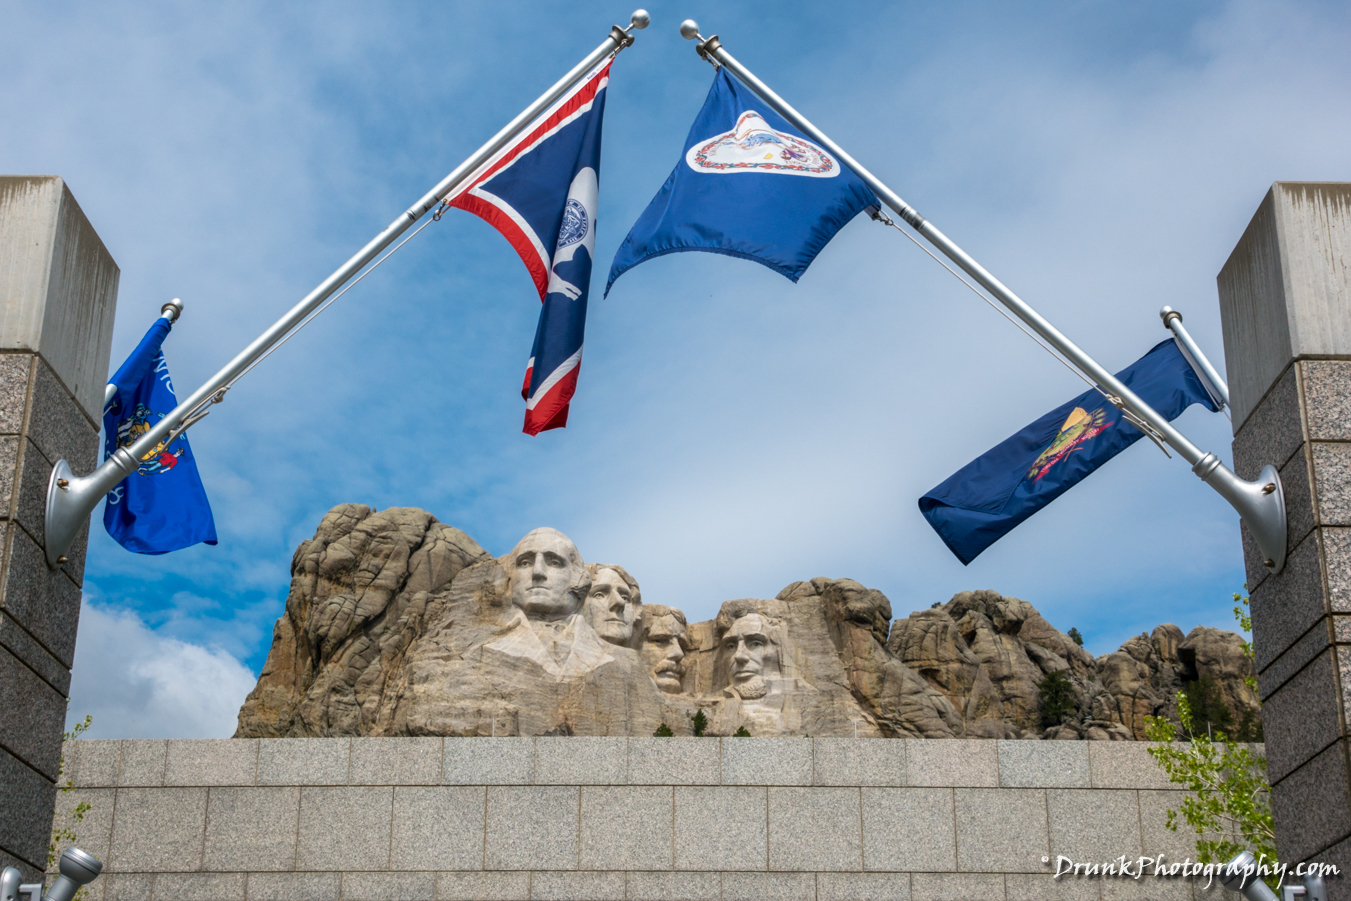 Mount Rushmore Drunkphotography.com